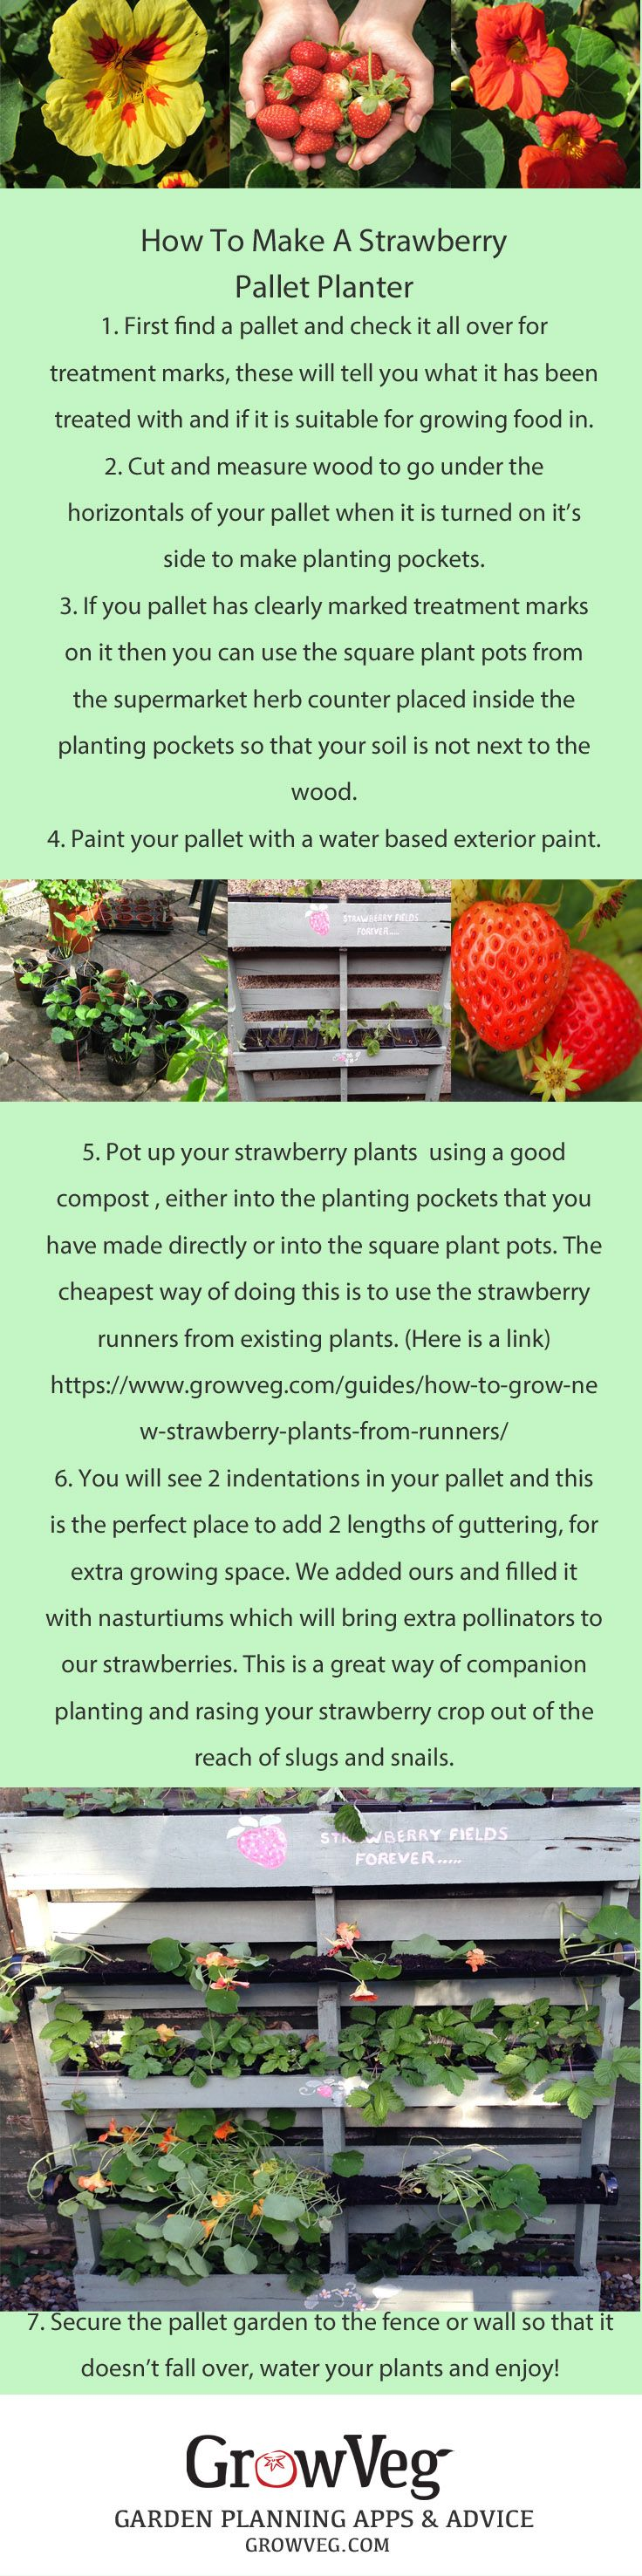 How to build a Strawberry planter, complete with a companion planted gutter garden out of an old pallet.....